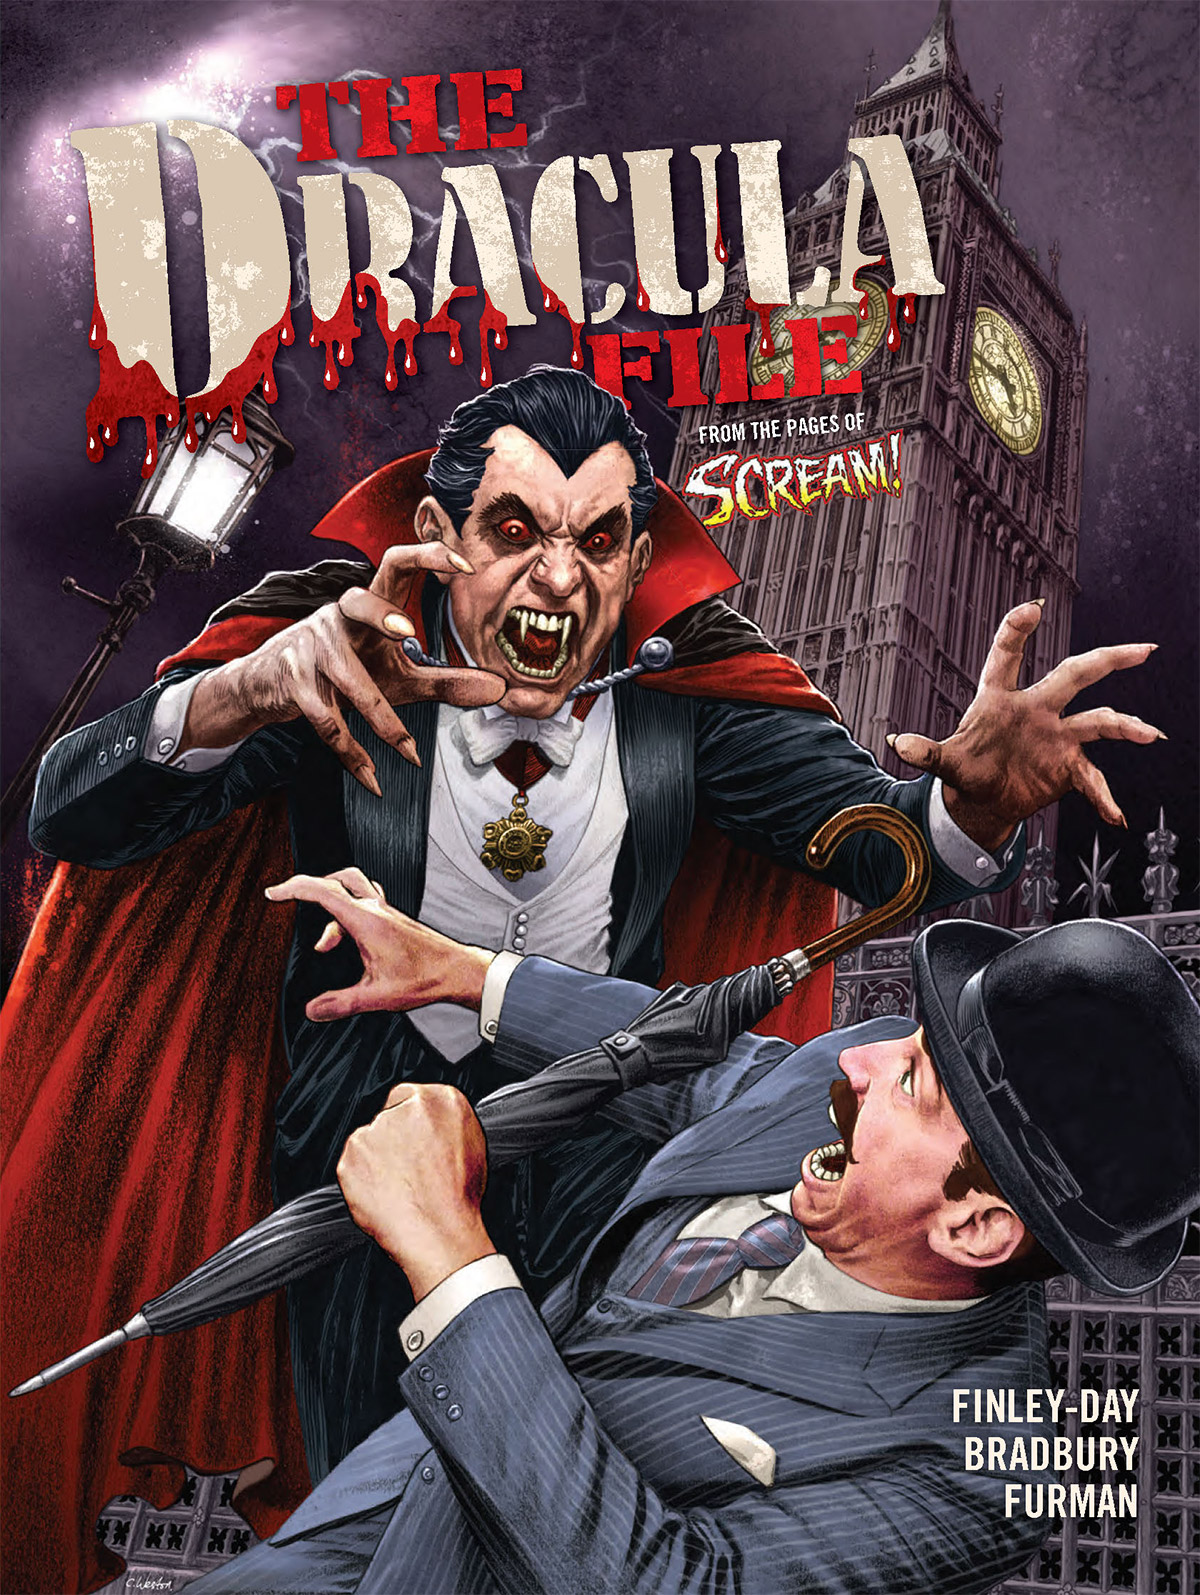 THE DRACULA FILE (UK)